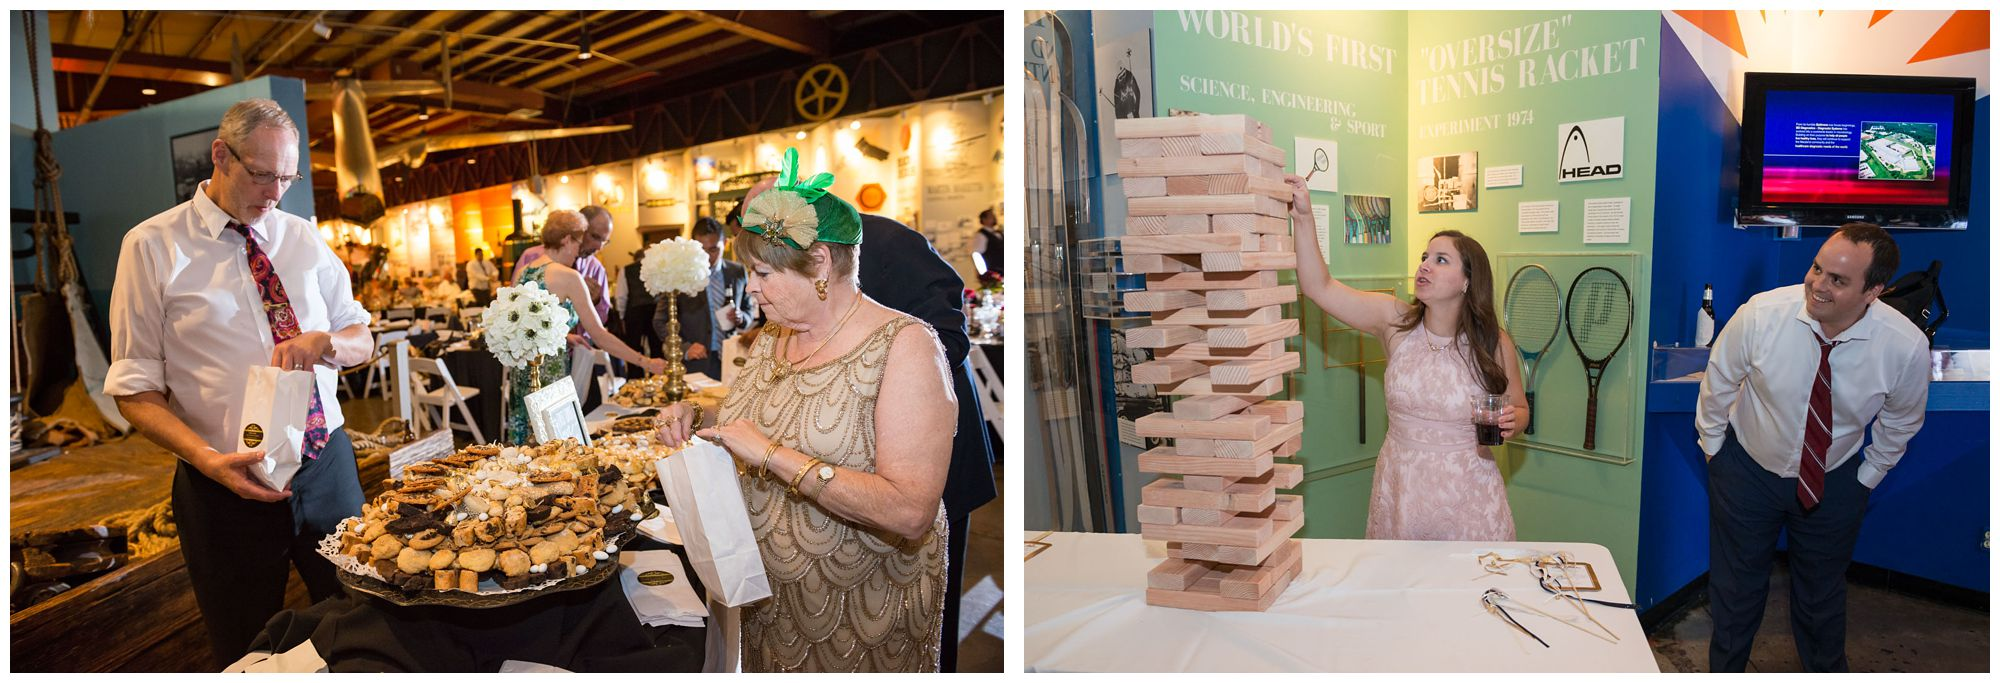 Italian cookie table and giant jenga during wedding reception at Baltimore Museum of Industry